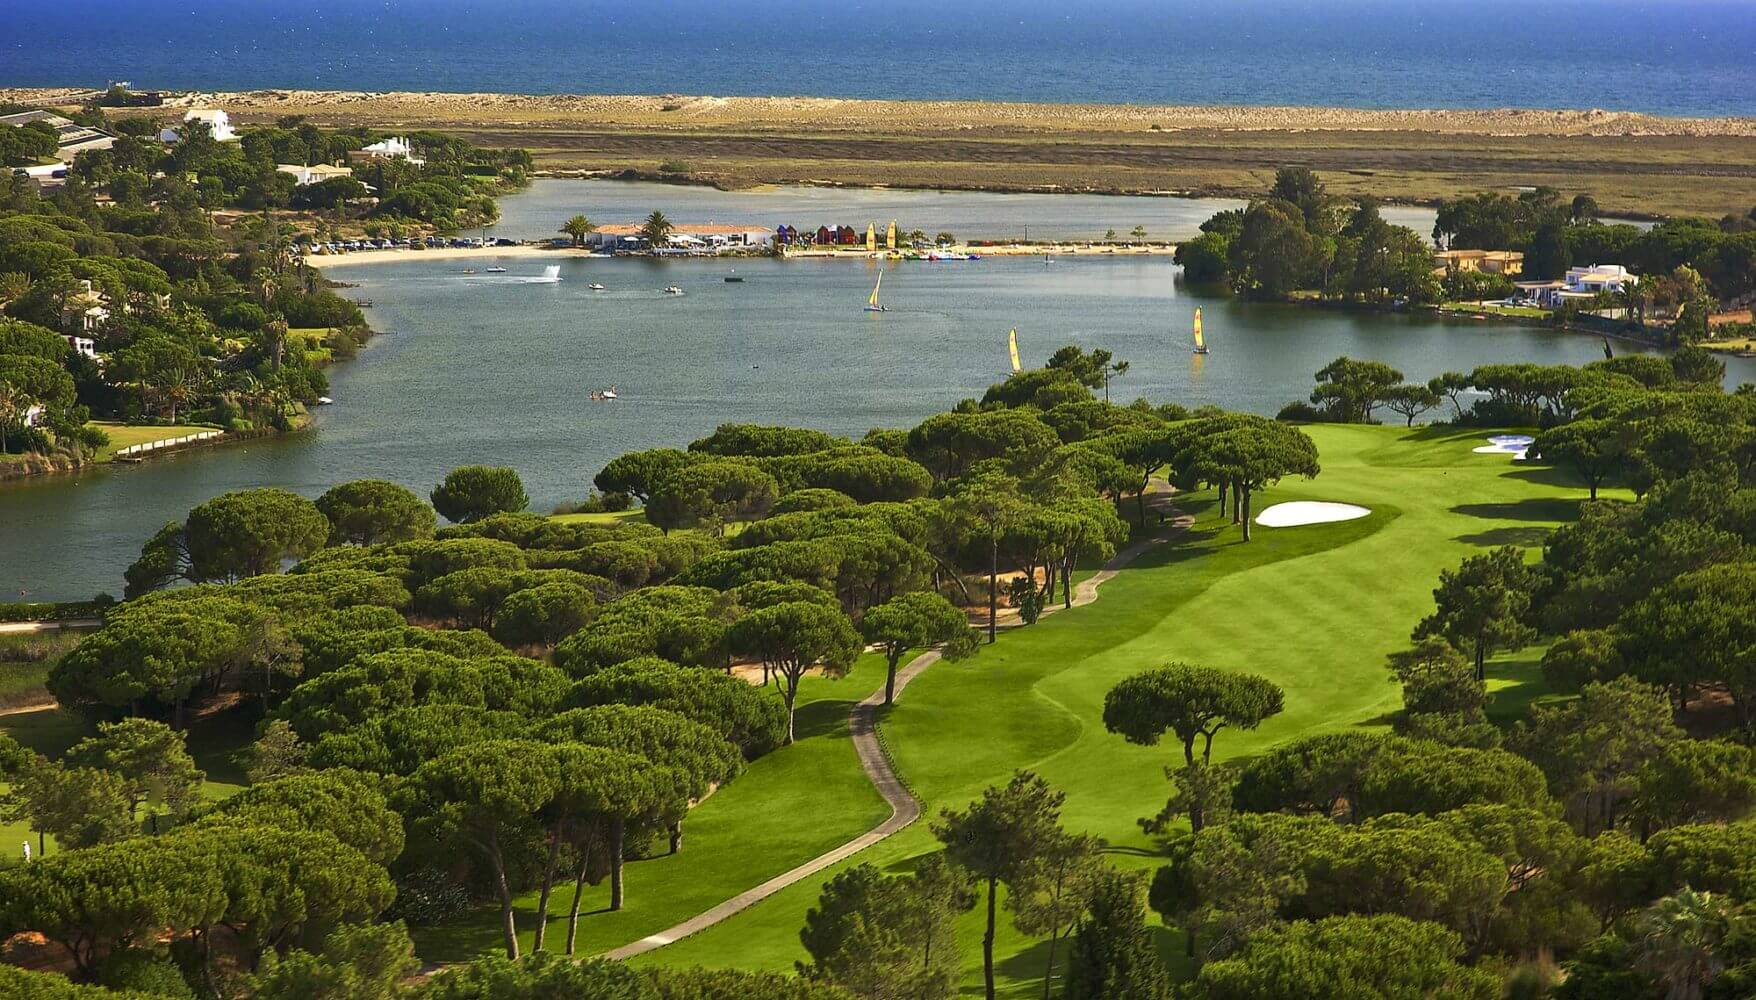 south golf course quinta do lago banner 1